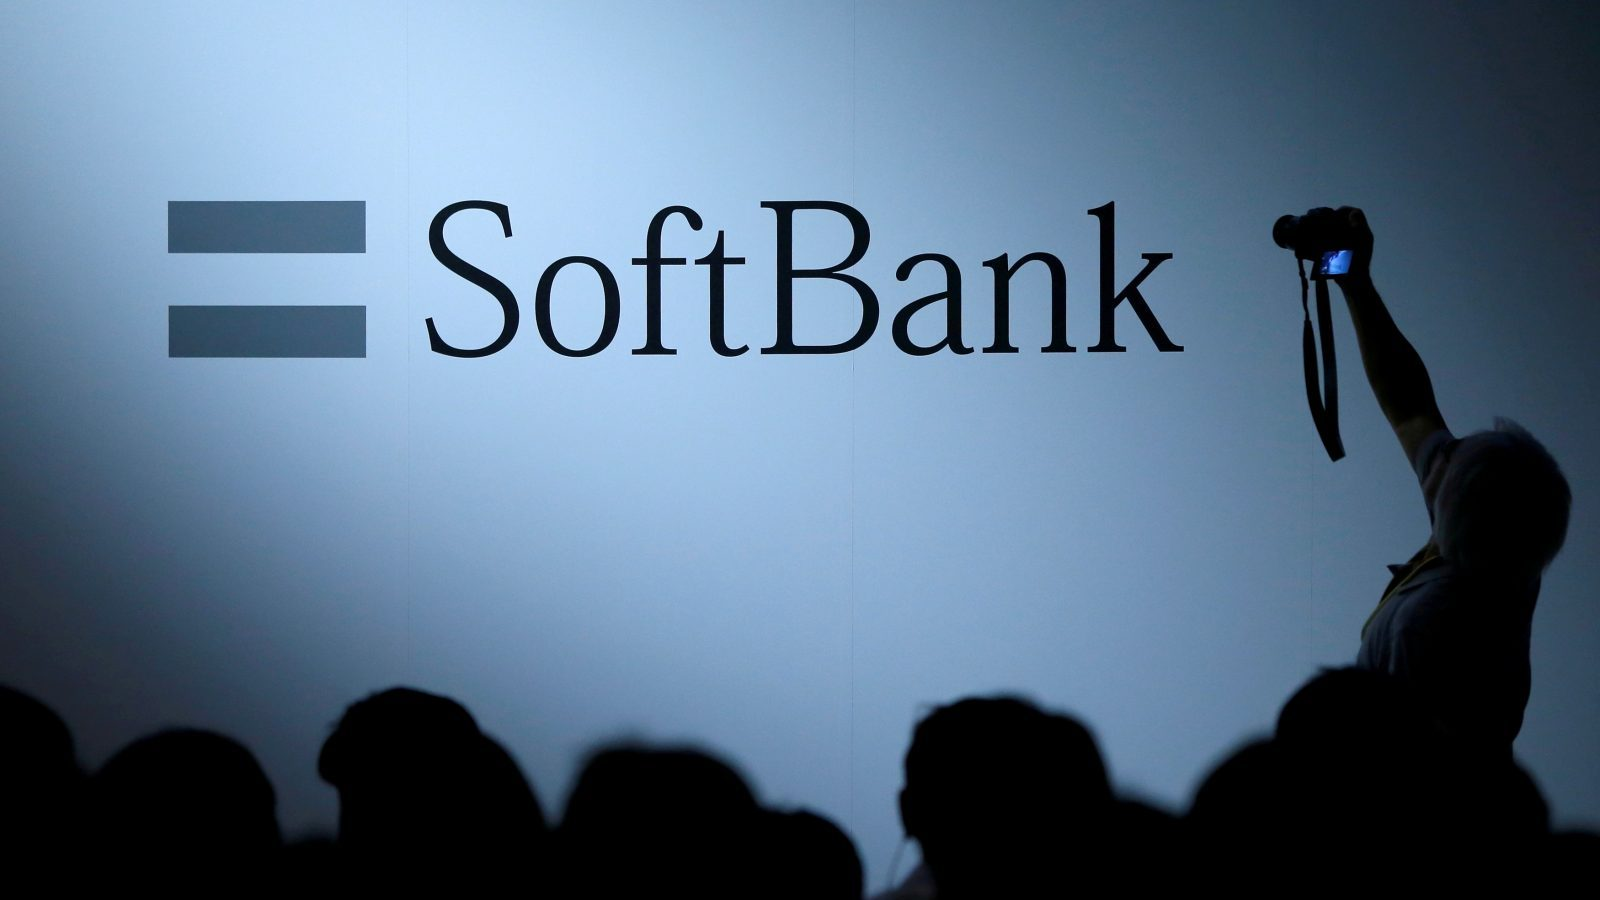 FILE PHOTO: The logo of SoftBank Group Corp is displayed at SoftBank World 2017 conference in Tokyo, Japan, July 20, 2017. REUTERS/Issei Kato/File photo - RTS1B6HC